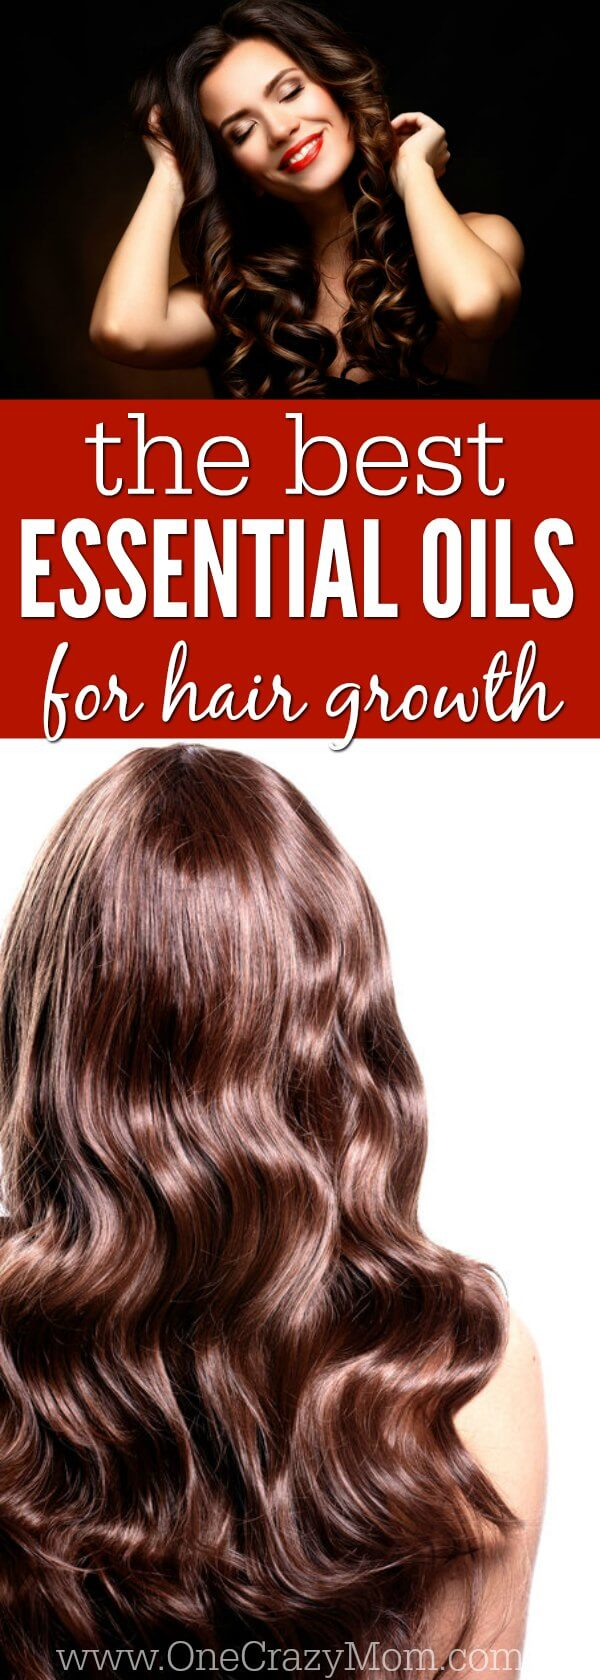 Learn all about the best oil for hair growth. Find the essential oils for hair growth. Give these essential oils to help with hair growth a try today.